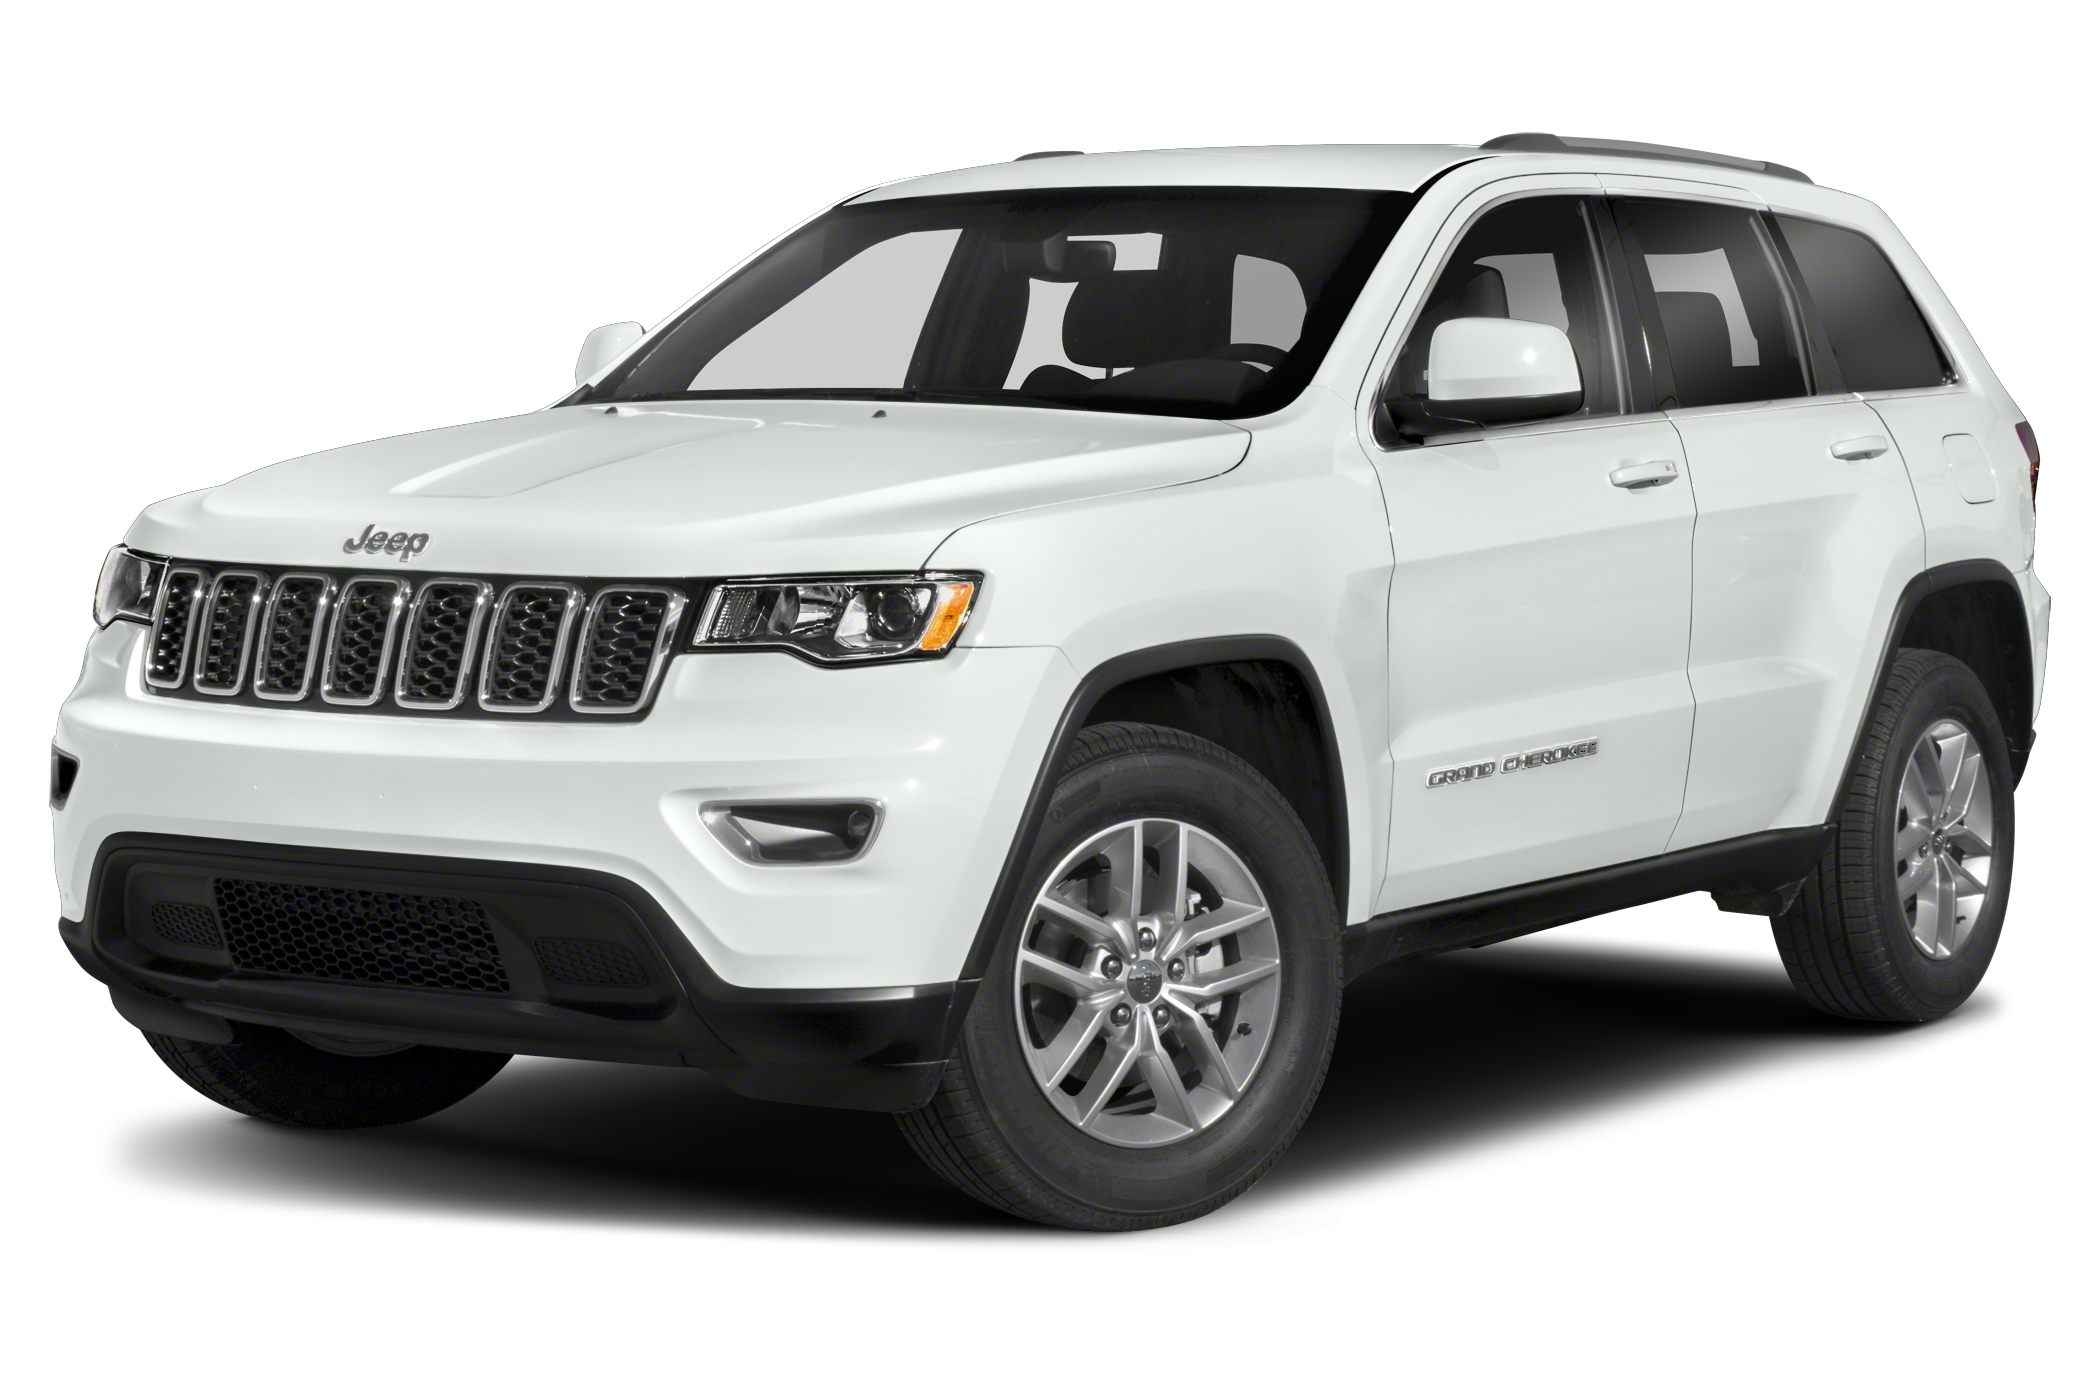 2018 Jeep Grand Cherokee Styles Amp Features Highlights